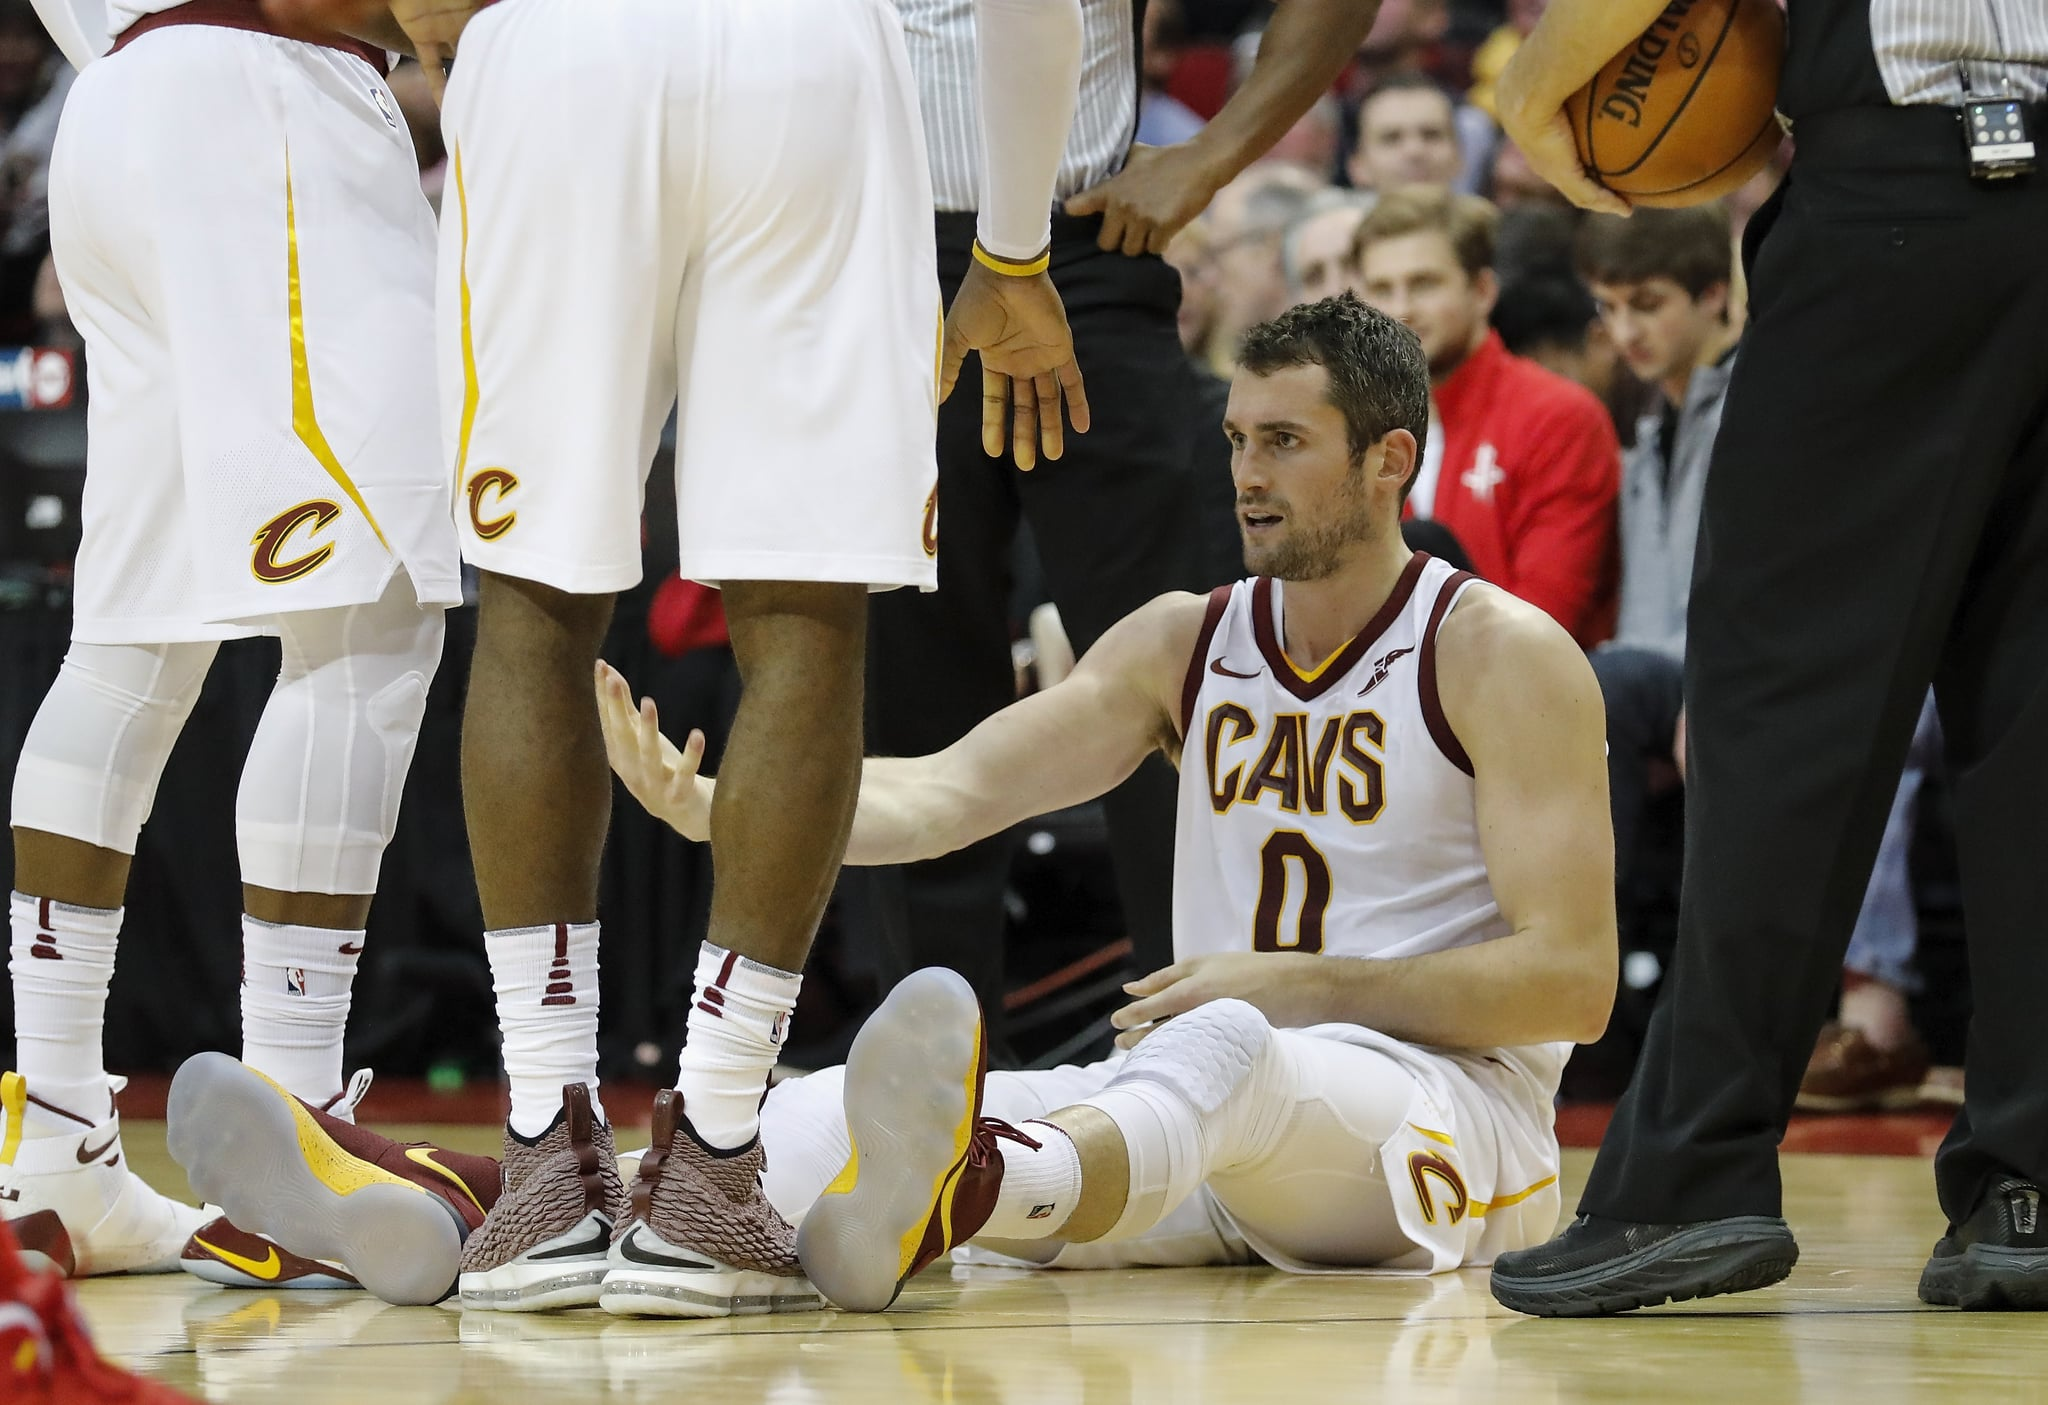 HOUSTON, TX - NOVEMBER 09:  Kevin Love #0 of the Cleveland Cavaliers is helped from the floor in the first half against the Houston Rockets at Toyota centre on November 09, 2017 in Houston, Texas.  NOTE TO USER: User expressly acknowledges and agrees that, by downloading and or using this photograph, User is consenting to the terms and conditions of the Getty Images licence Agreement.  (Photo by Tim Warner/Getty Images)